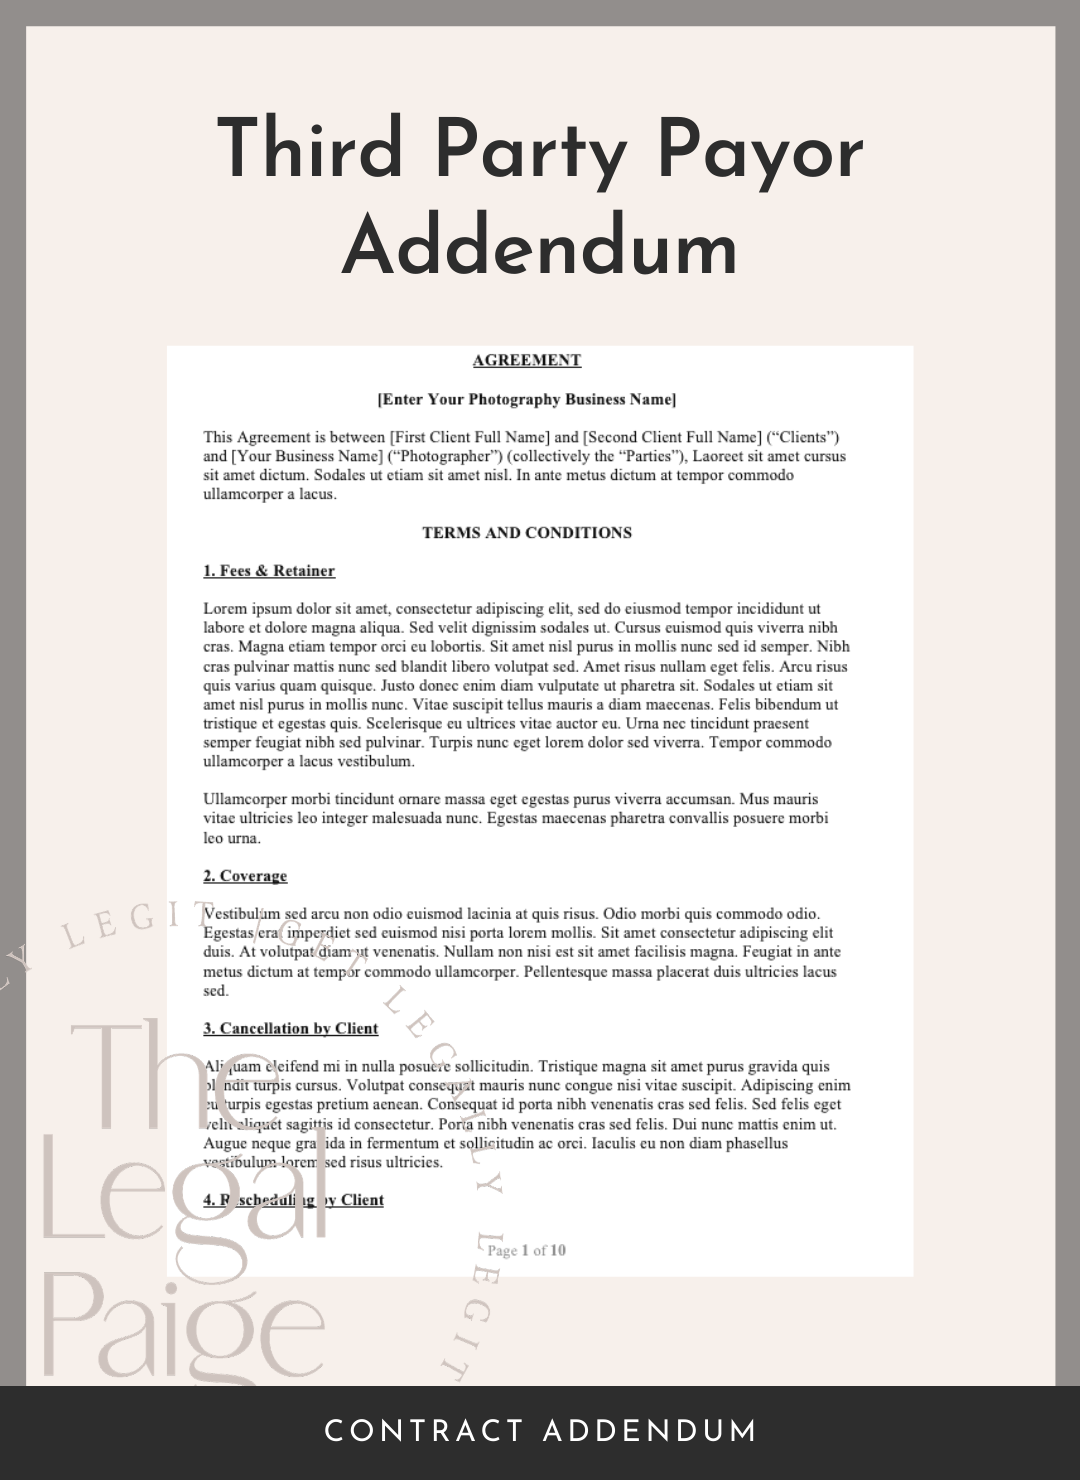 Third Party Payor Addendum